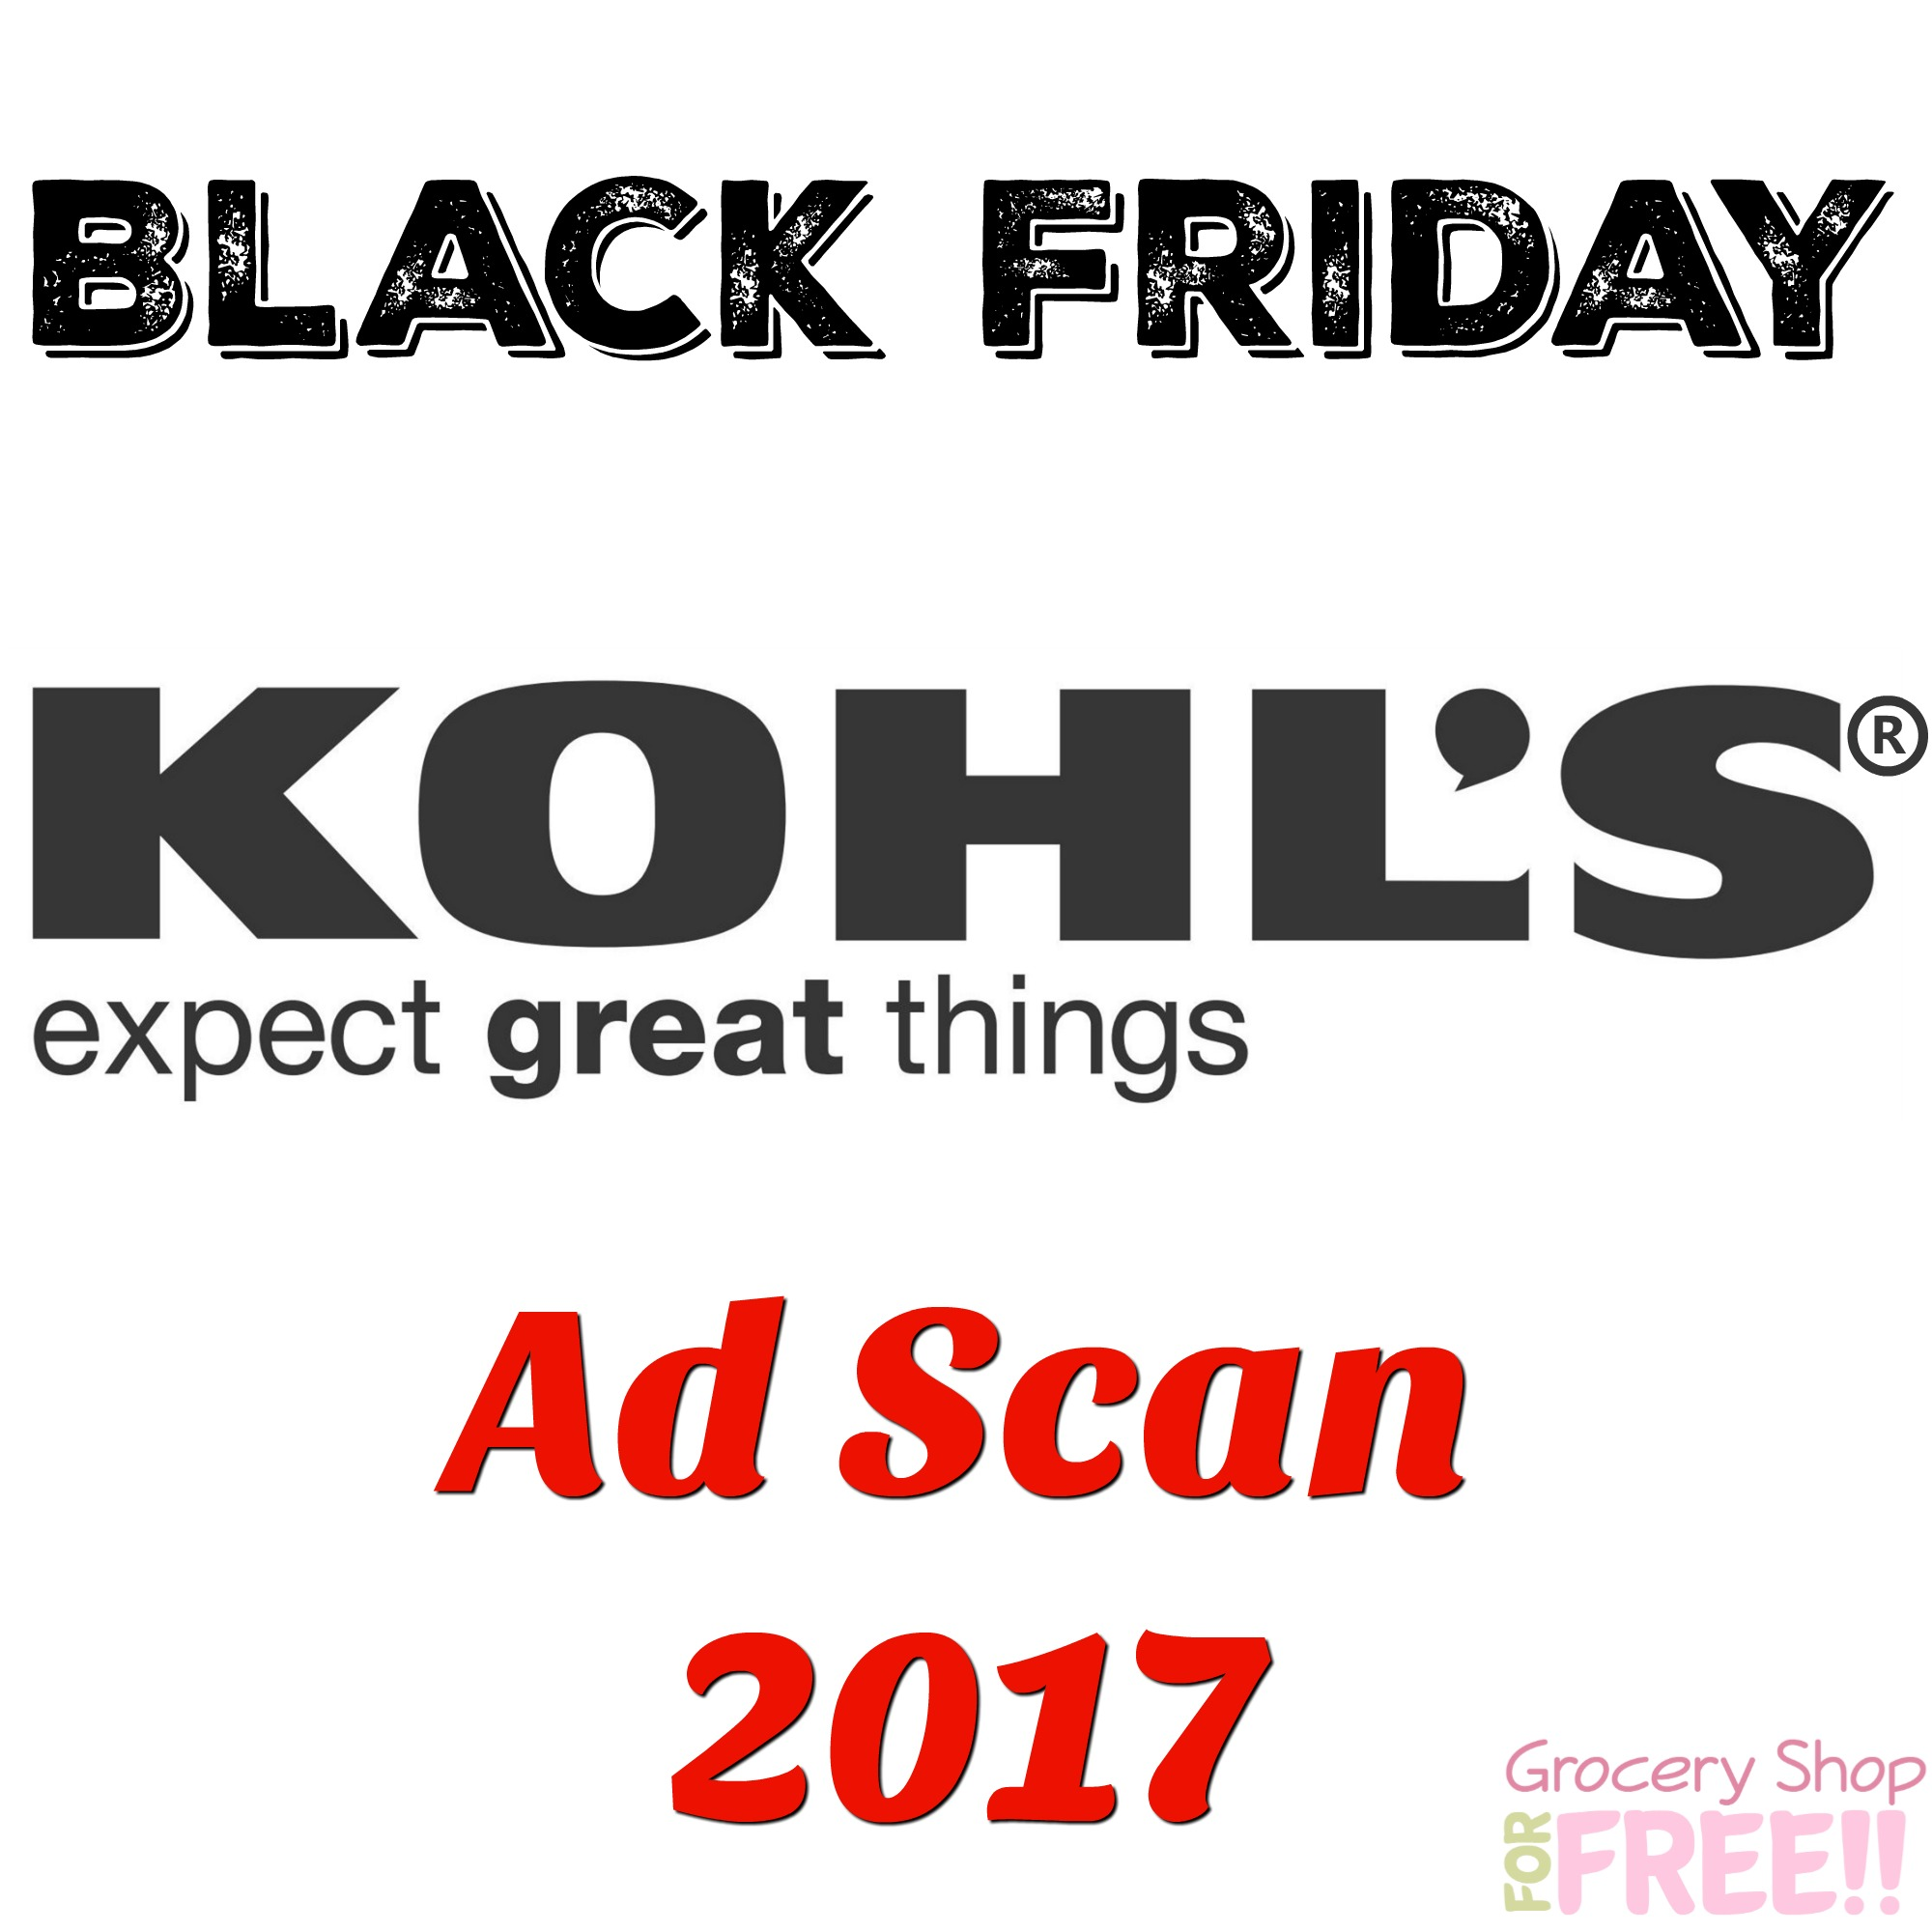 Kohl's Black Friday Ad Scan 2017!